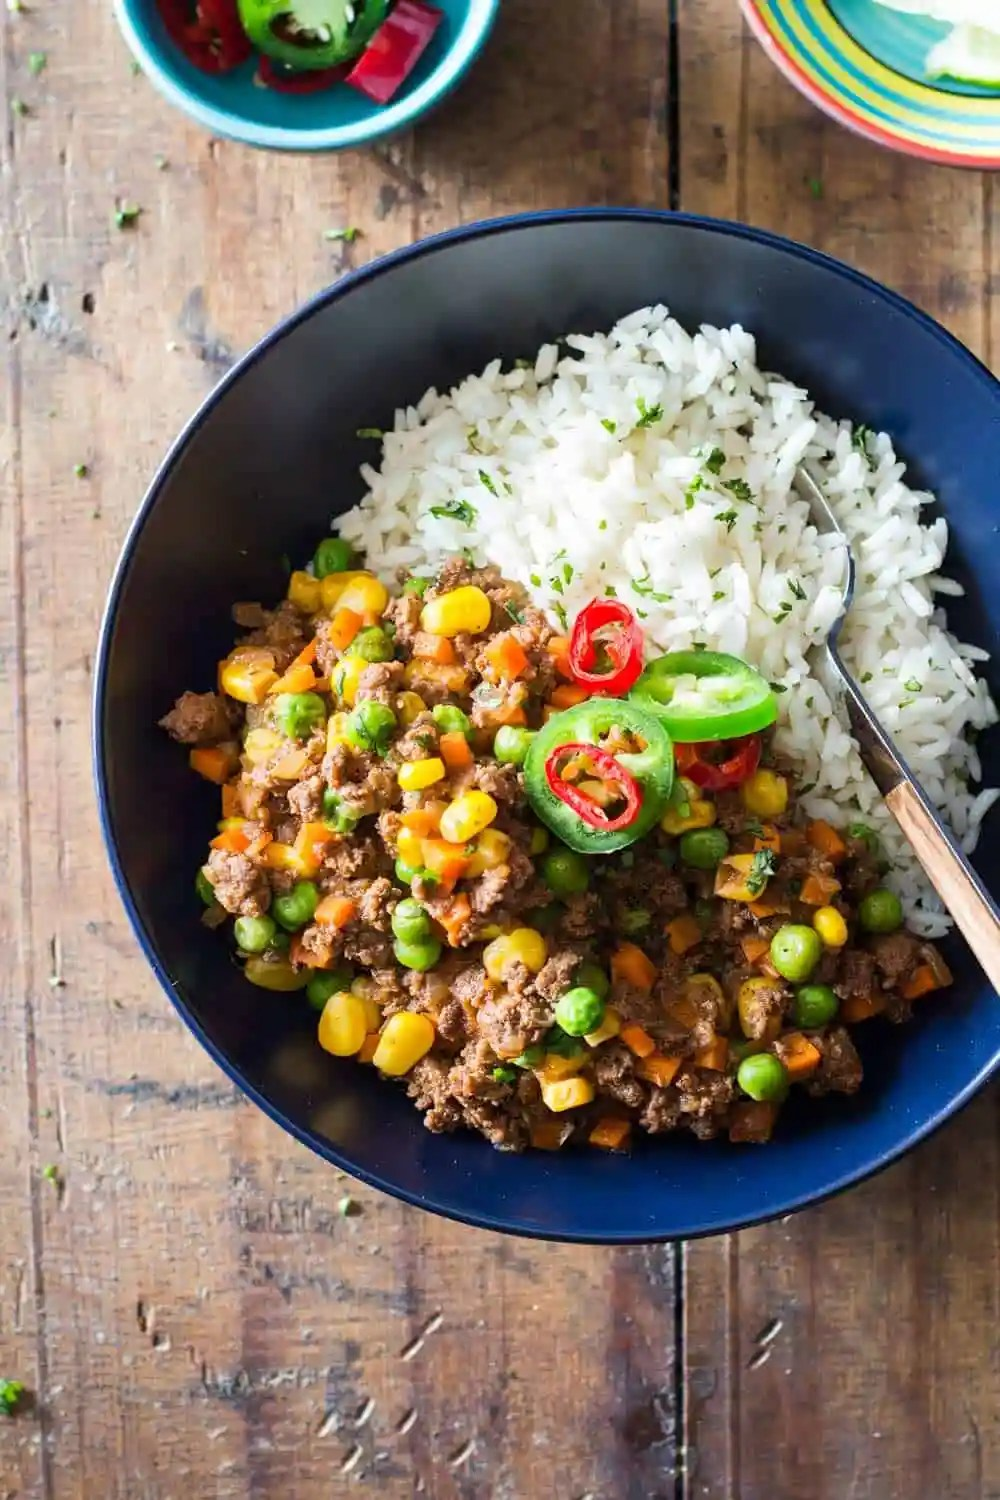 A combination of your two favorite recipe qualities: quick and Mexican. Hehe. This 20-Minute Mexican Picadillo is a great healthy weekday dinner recipe.